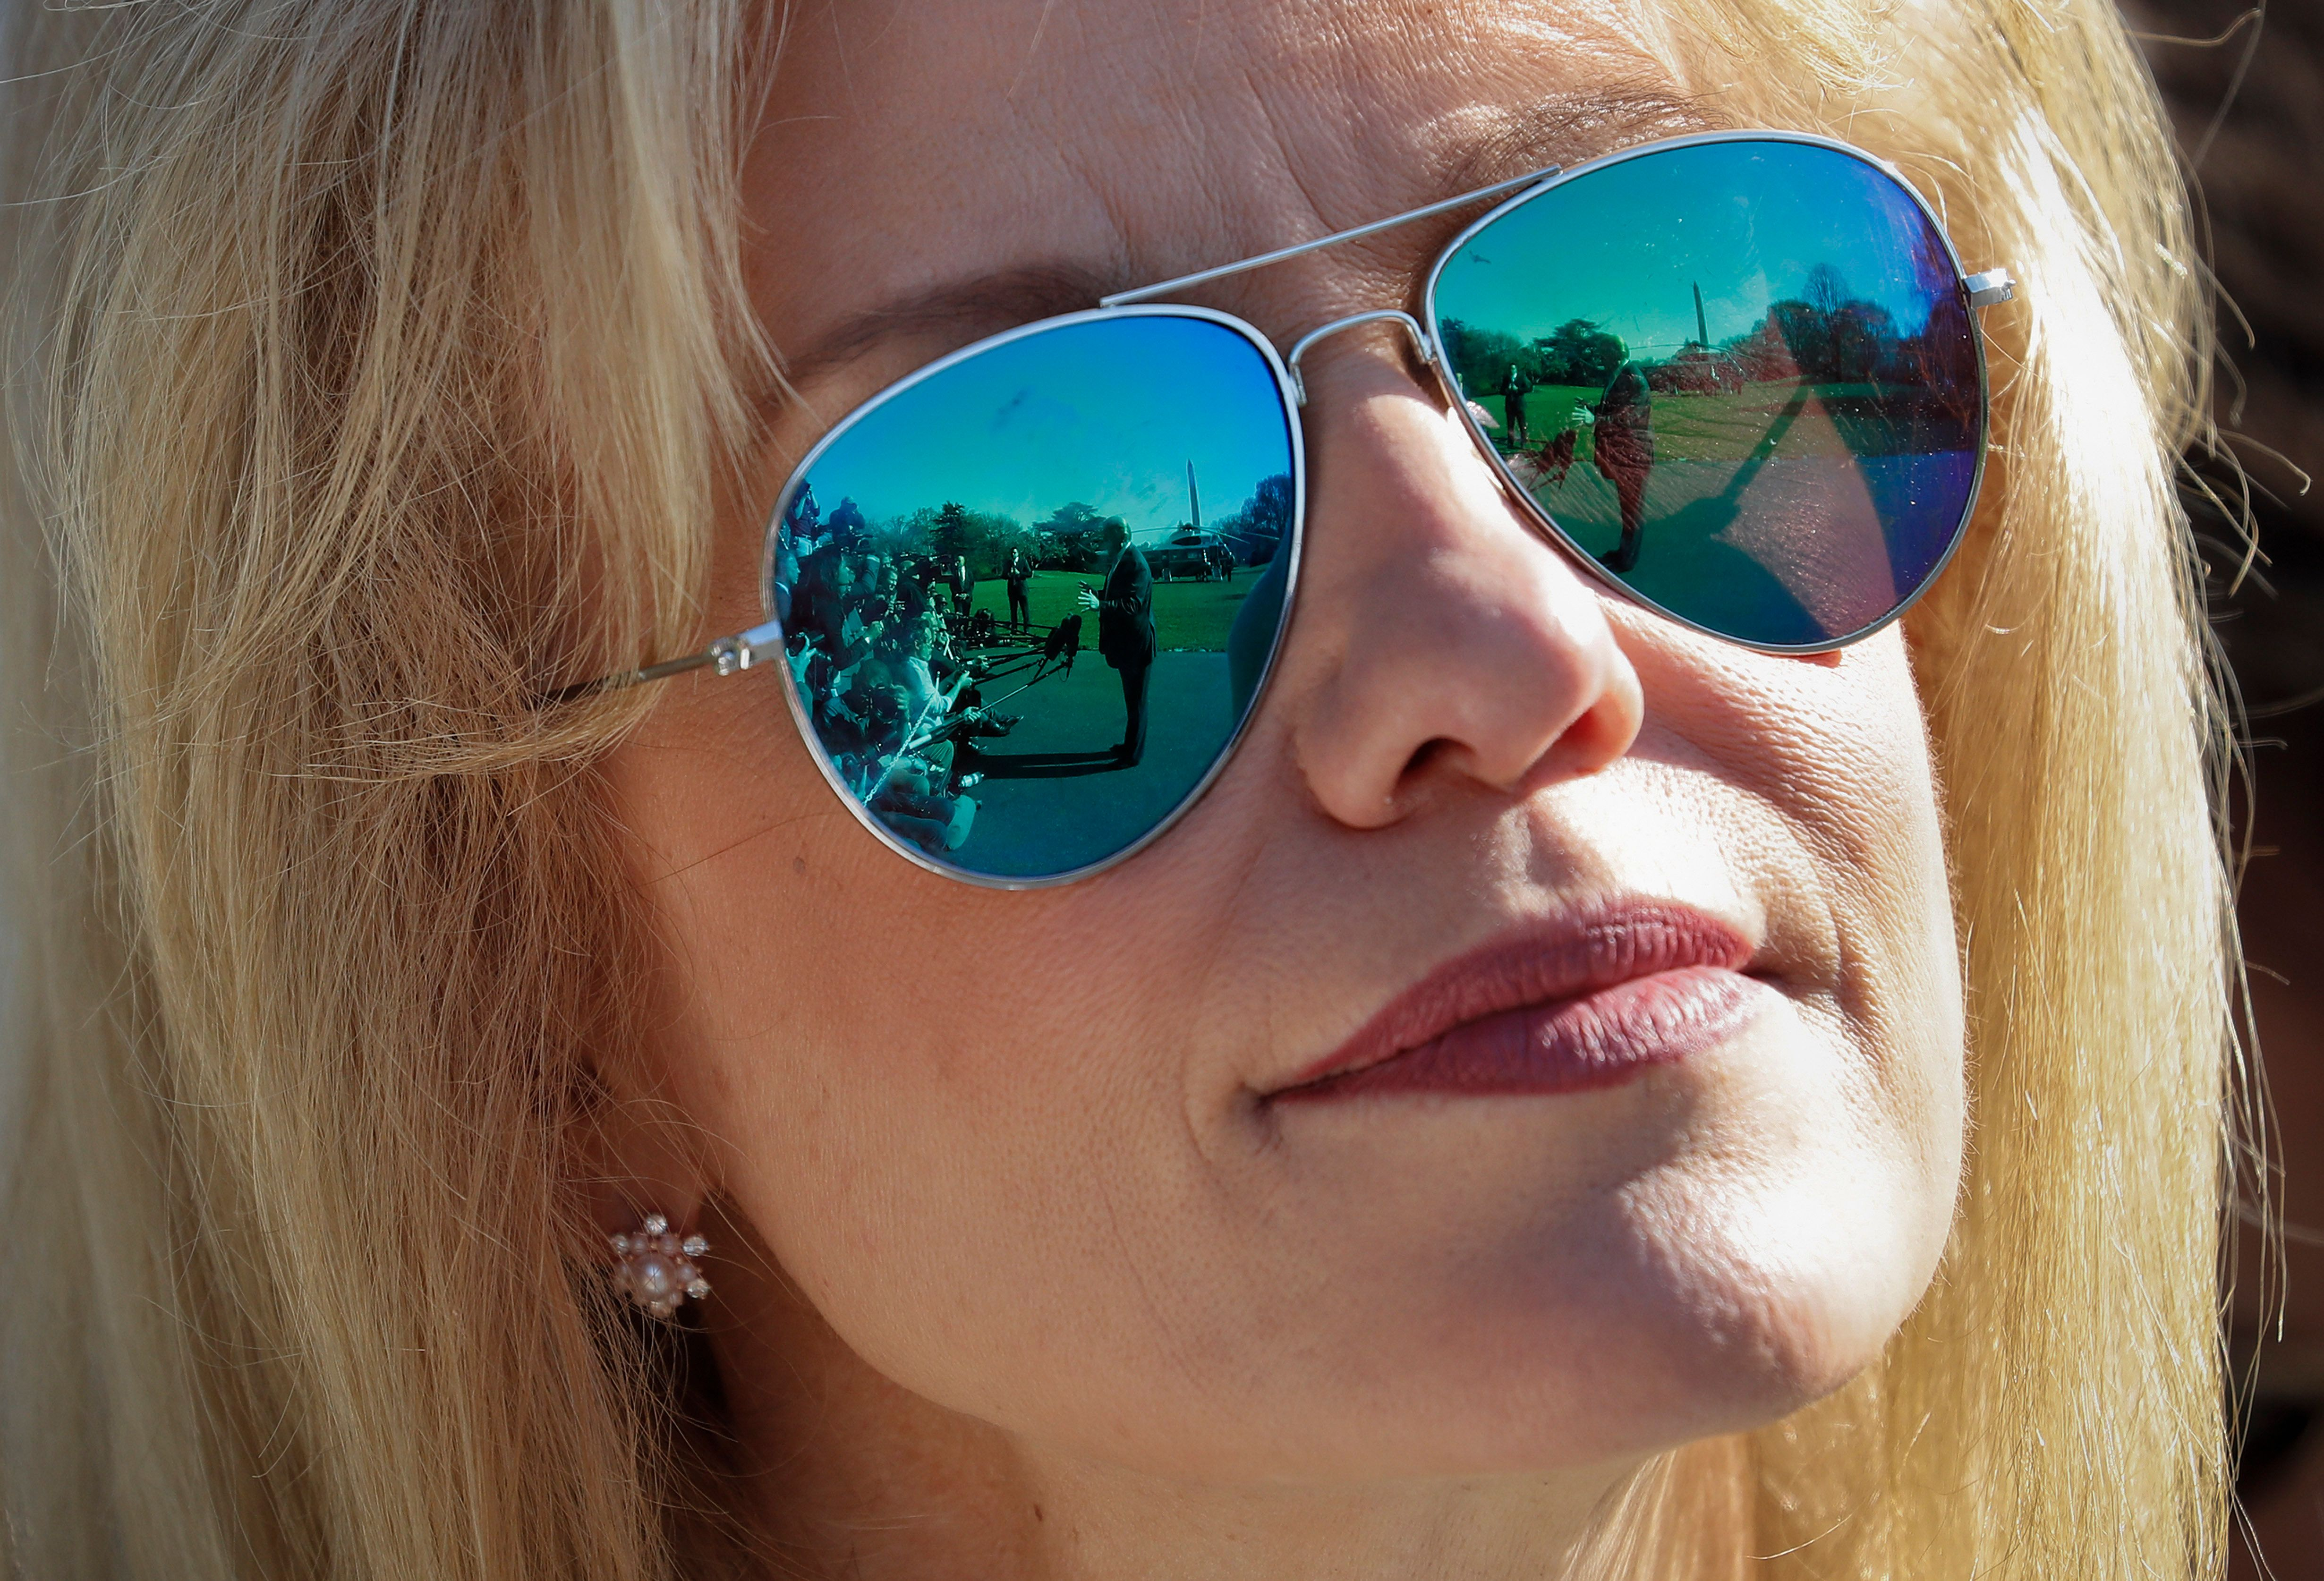 President Donald Trump is seen reflected in the sunglasses of Counselor to the President Kellyanne Conway as Trump speaks to members of the media on the South Lawn of the White House in Washington, before boarding Marine One helicopter, Wednesday, April 10, 2019. (AP Photo/Pablo Martinez Monsivais)